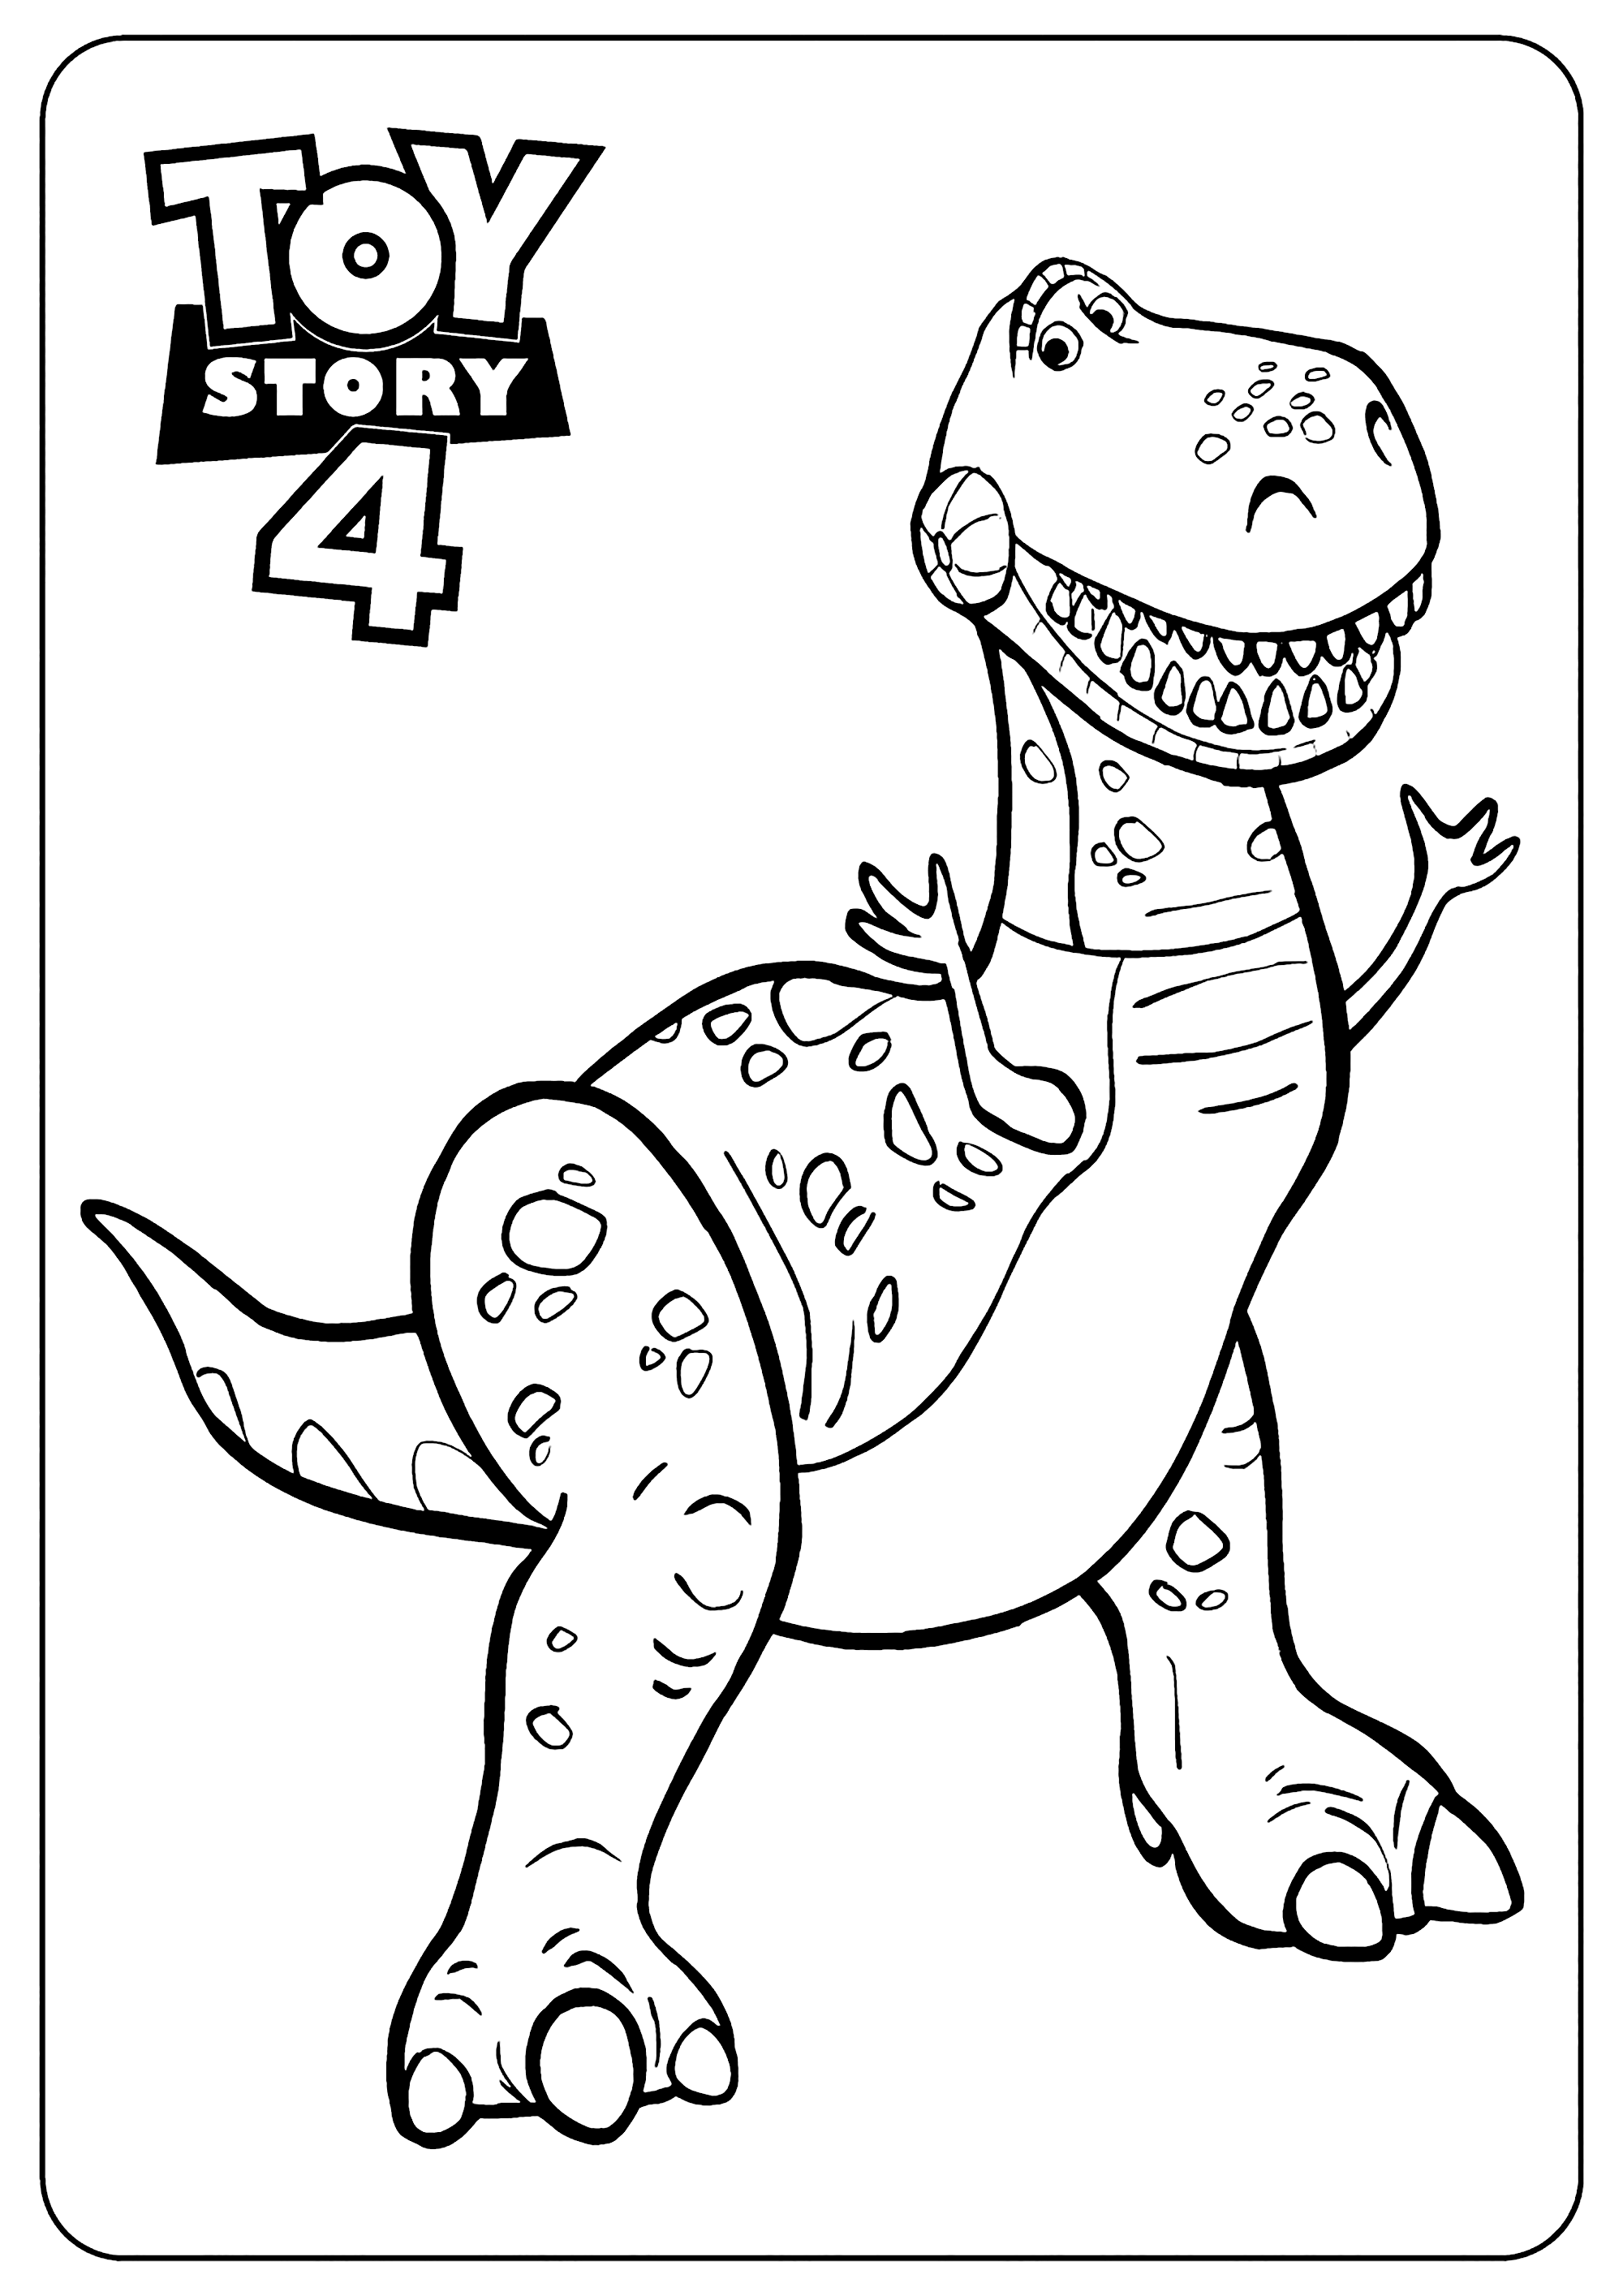 toy story 4 coloring page toy story 4 forky coloring pages get coloring pages 4 page story coloring toy